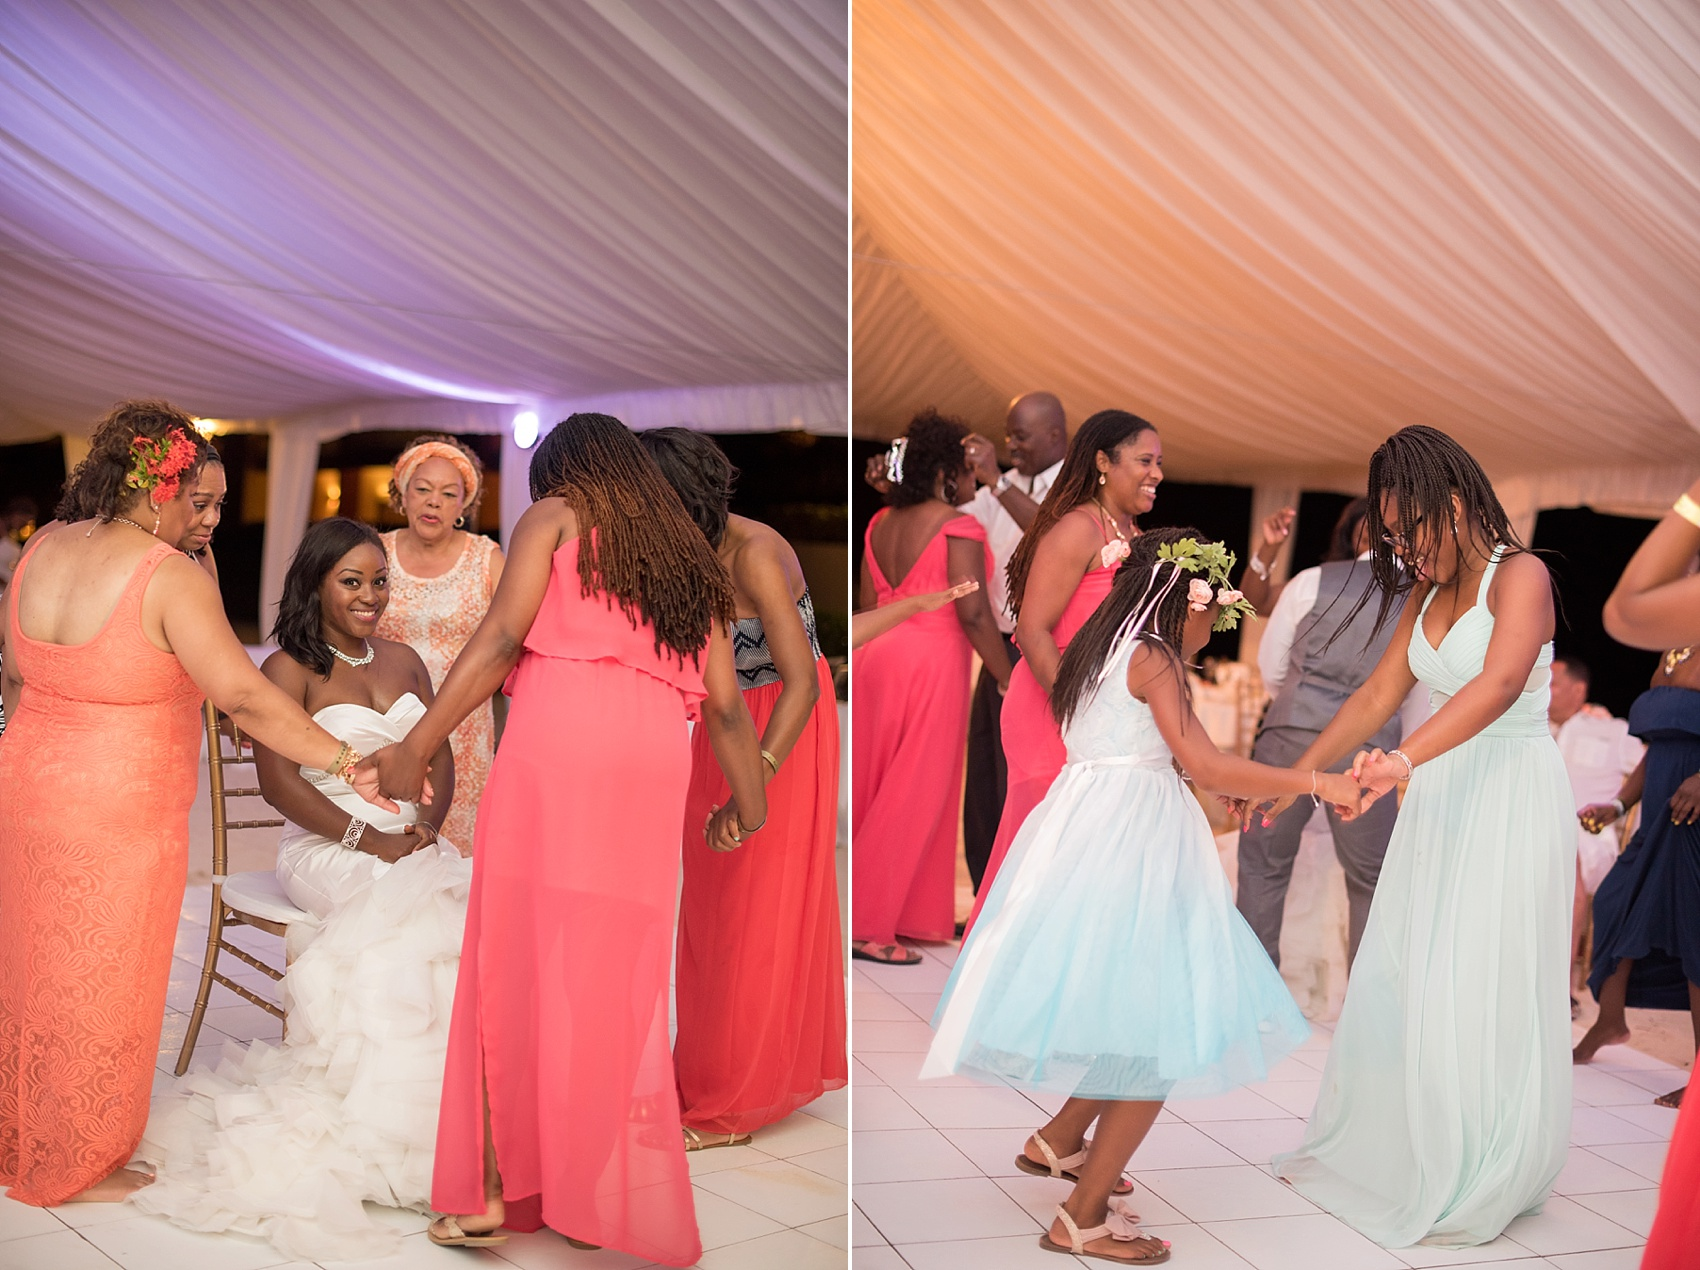 Iberostar Jamaica wedding photos. Images by Mikkel Paige Photography.